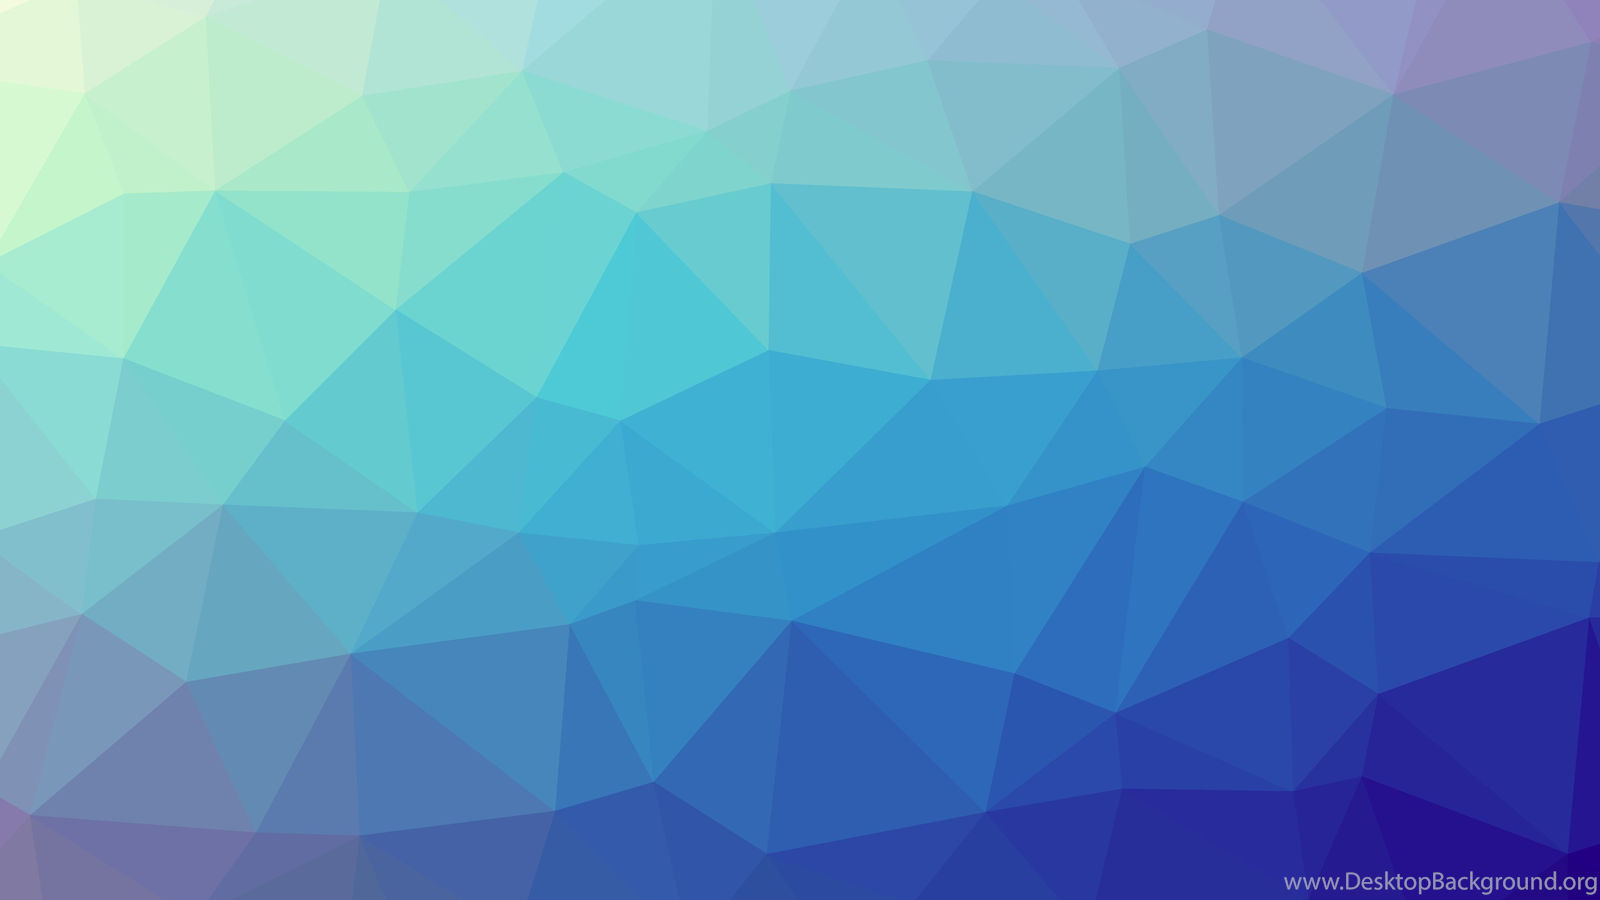 Triangle background 17 png (4266×2049) Desktop Background